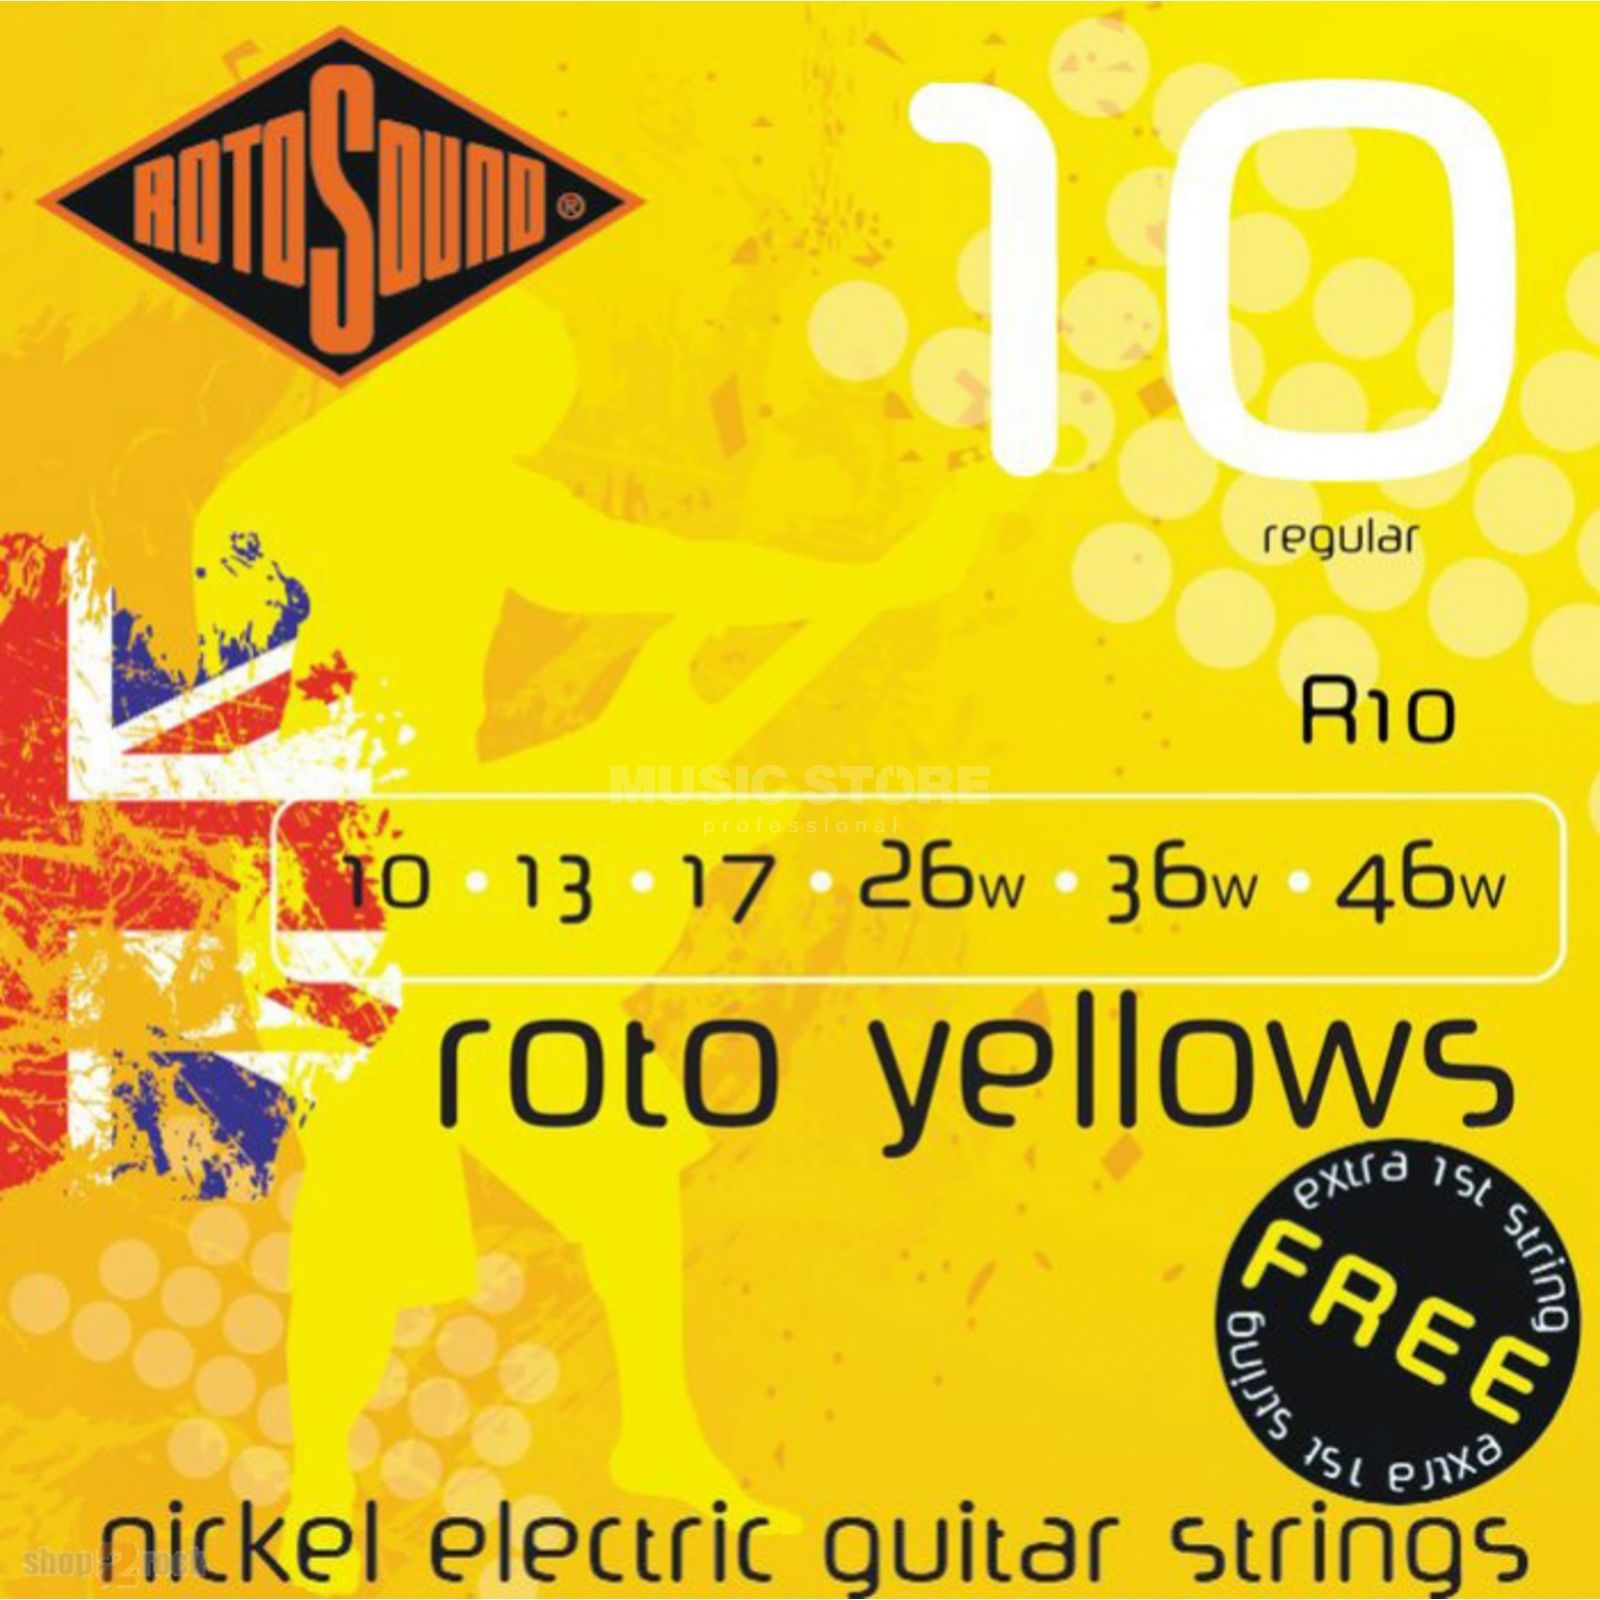 Rotosound Roto Yellows R10 10-46 Nickel Regular  e1 doppelt Produktbild